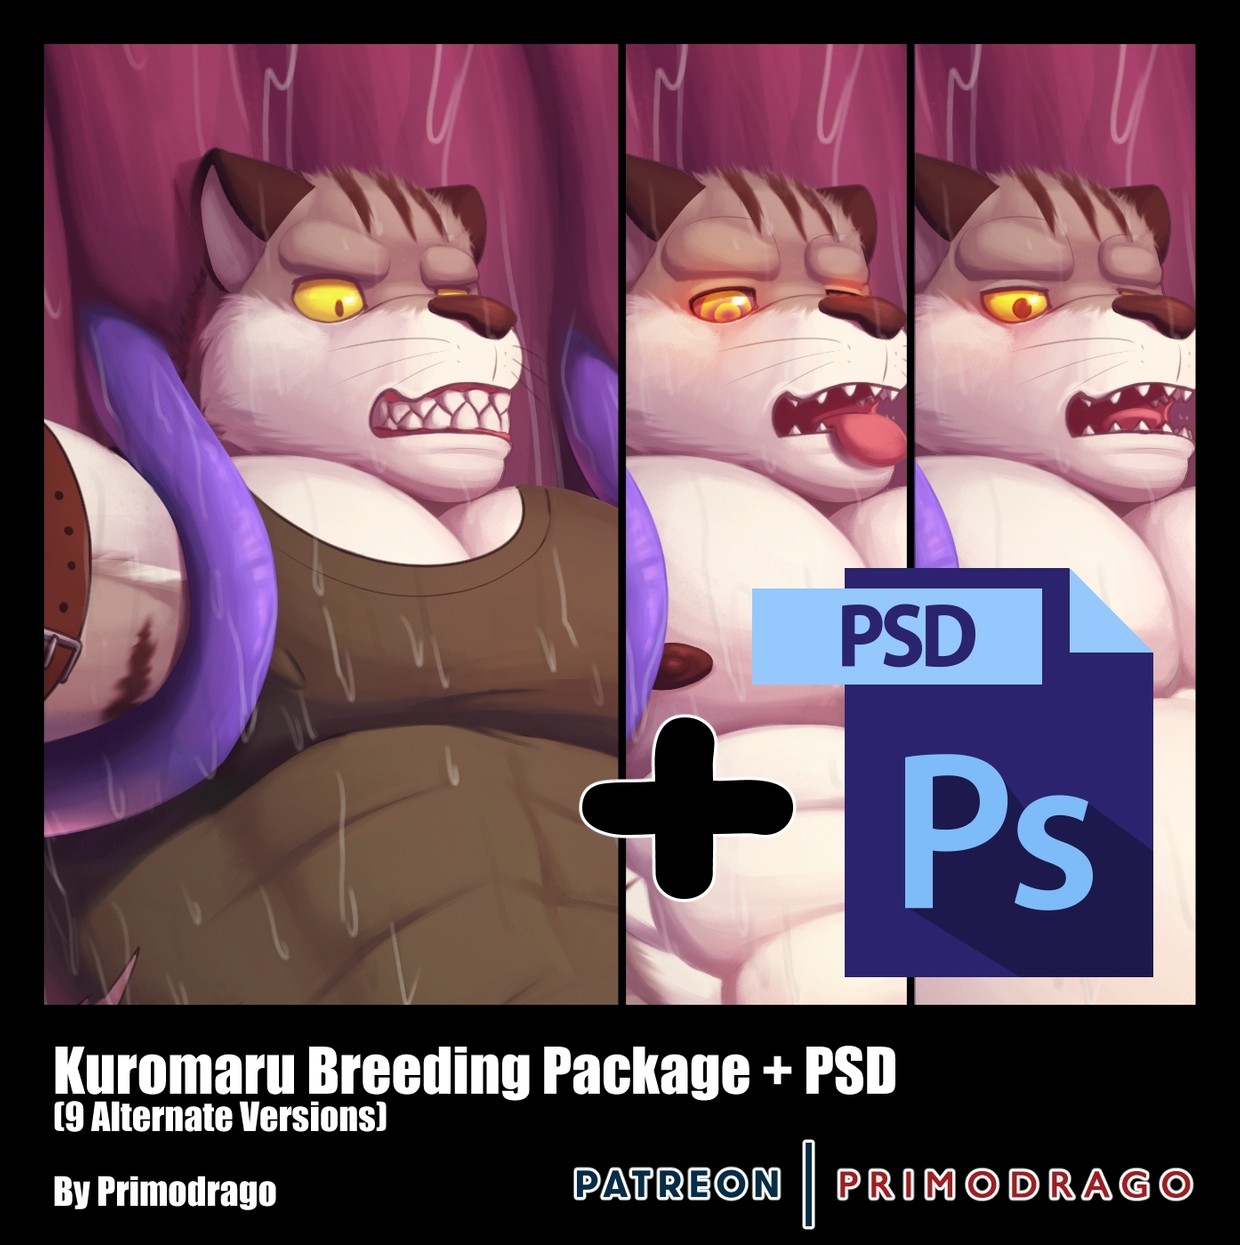 Kuromaru Breeding Theme + PSD File